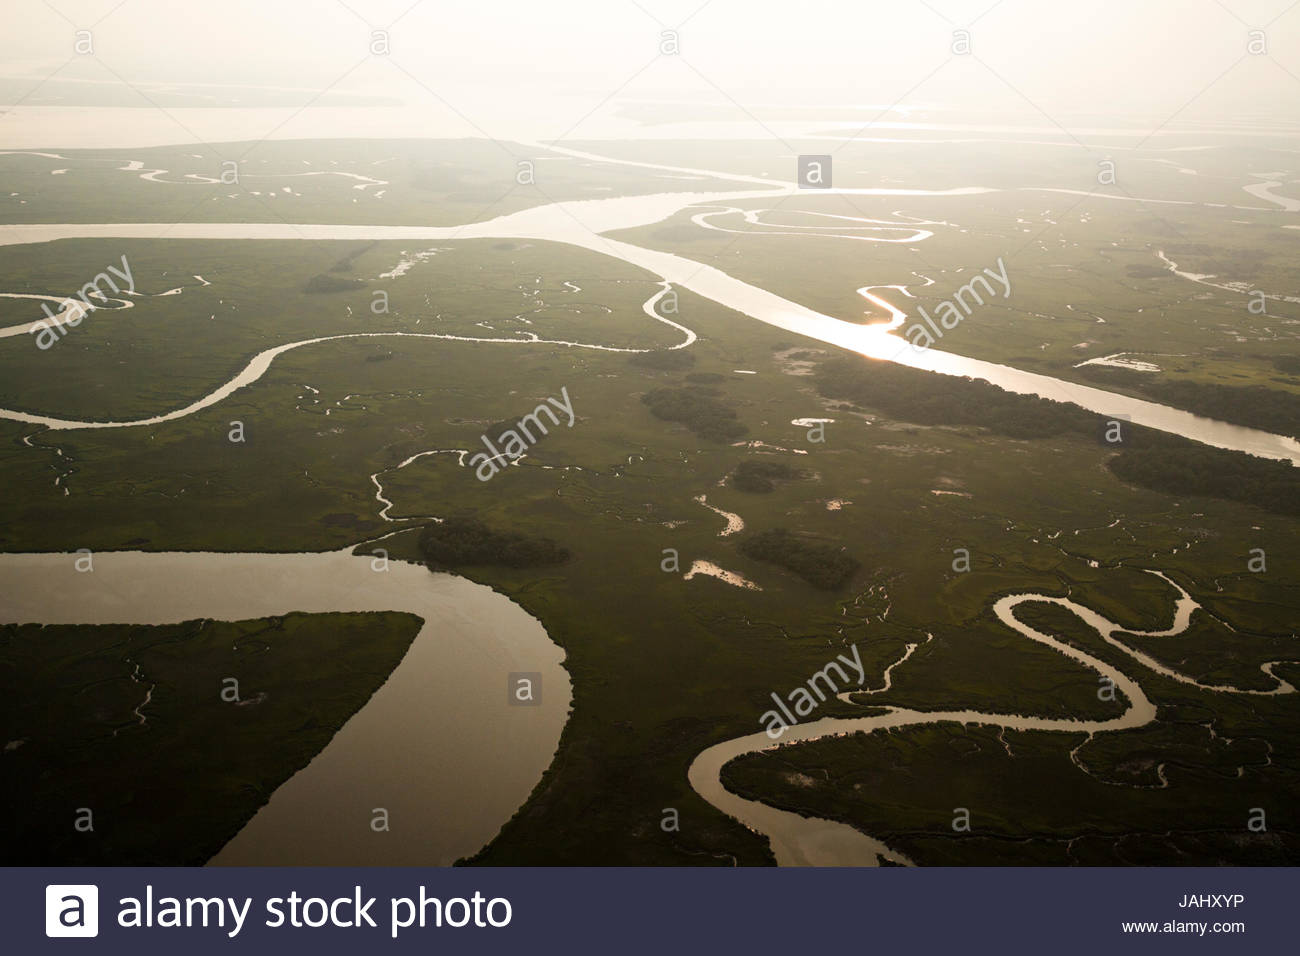 An aerial view of the Edisto and Combahee Rivers in the Ashepoo, Combahee, and Edisto River Basin, the ACE Basin. - Stock Image